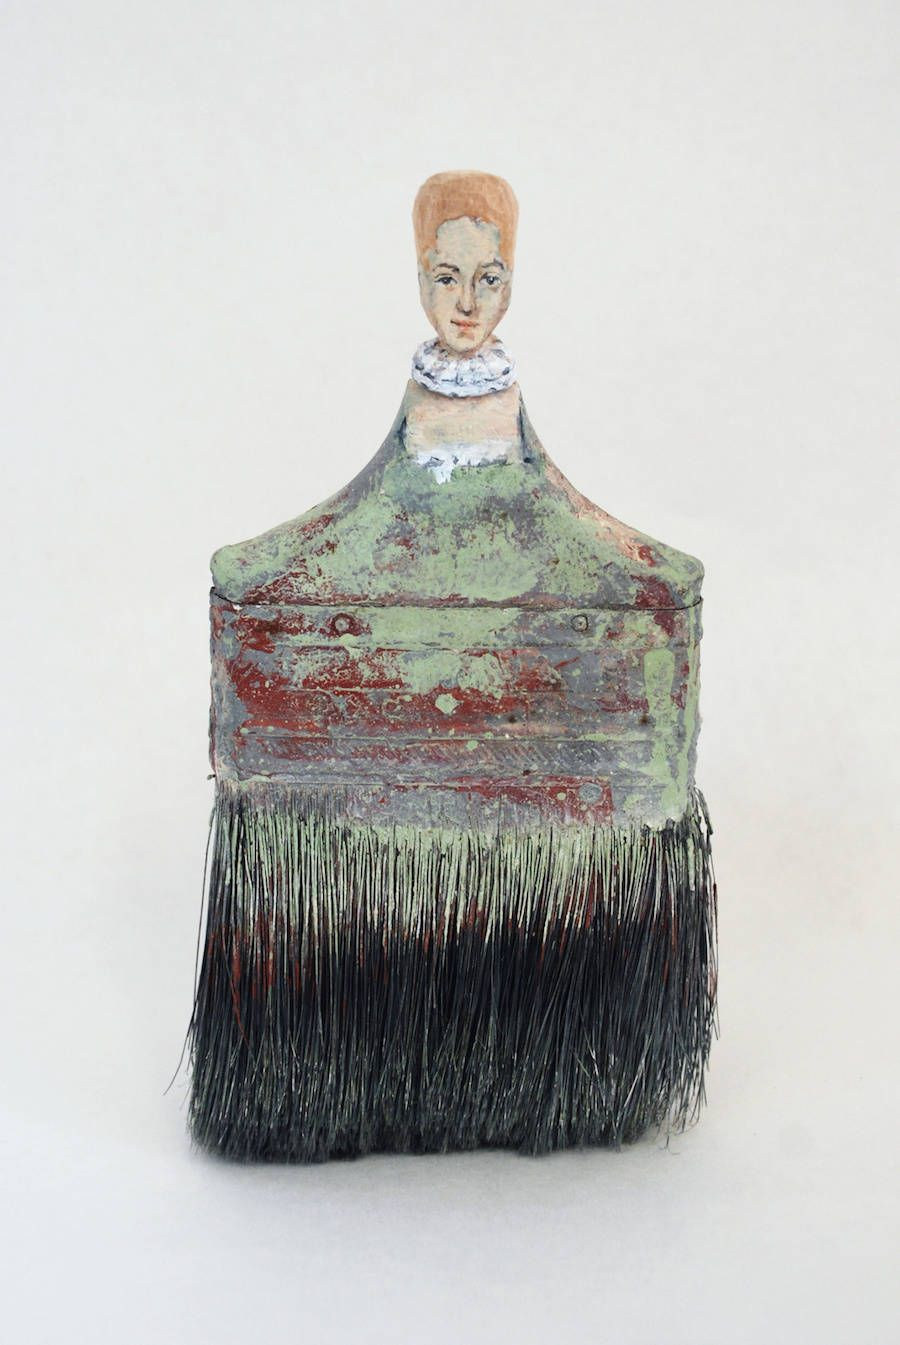 Old Paintbrushes Transformed into Famous Ladies Paint